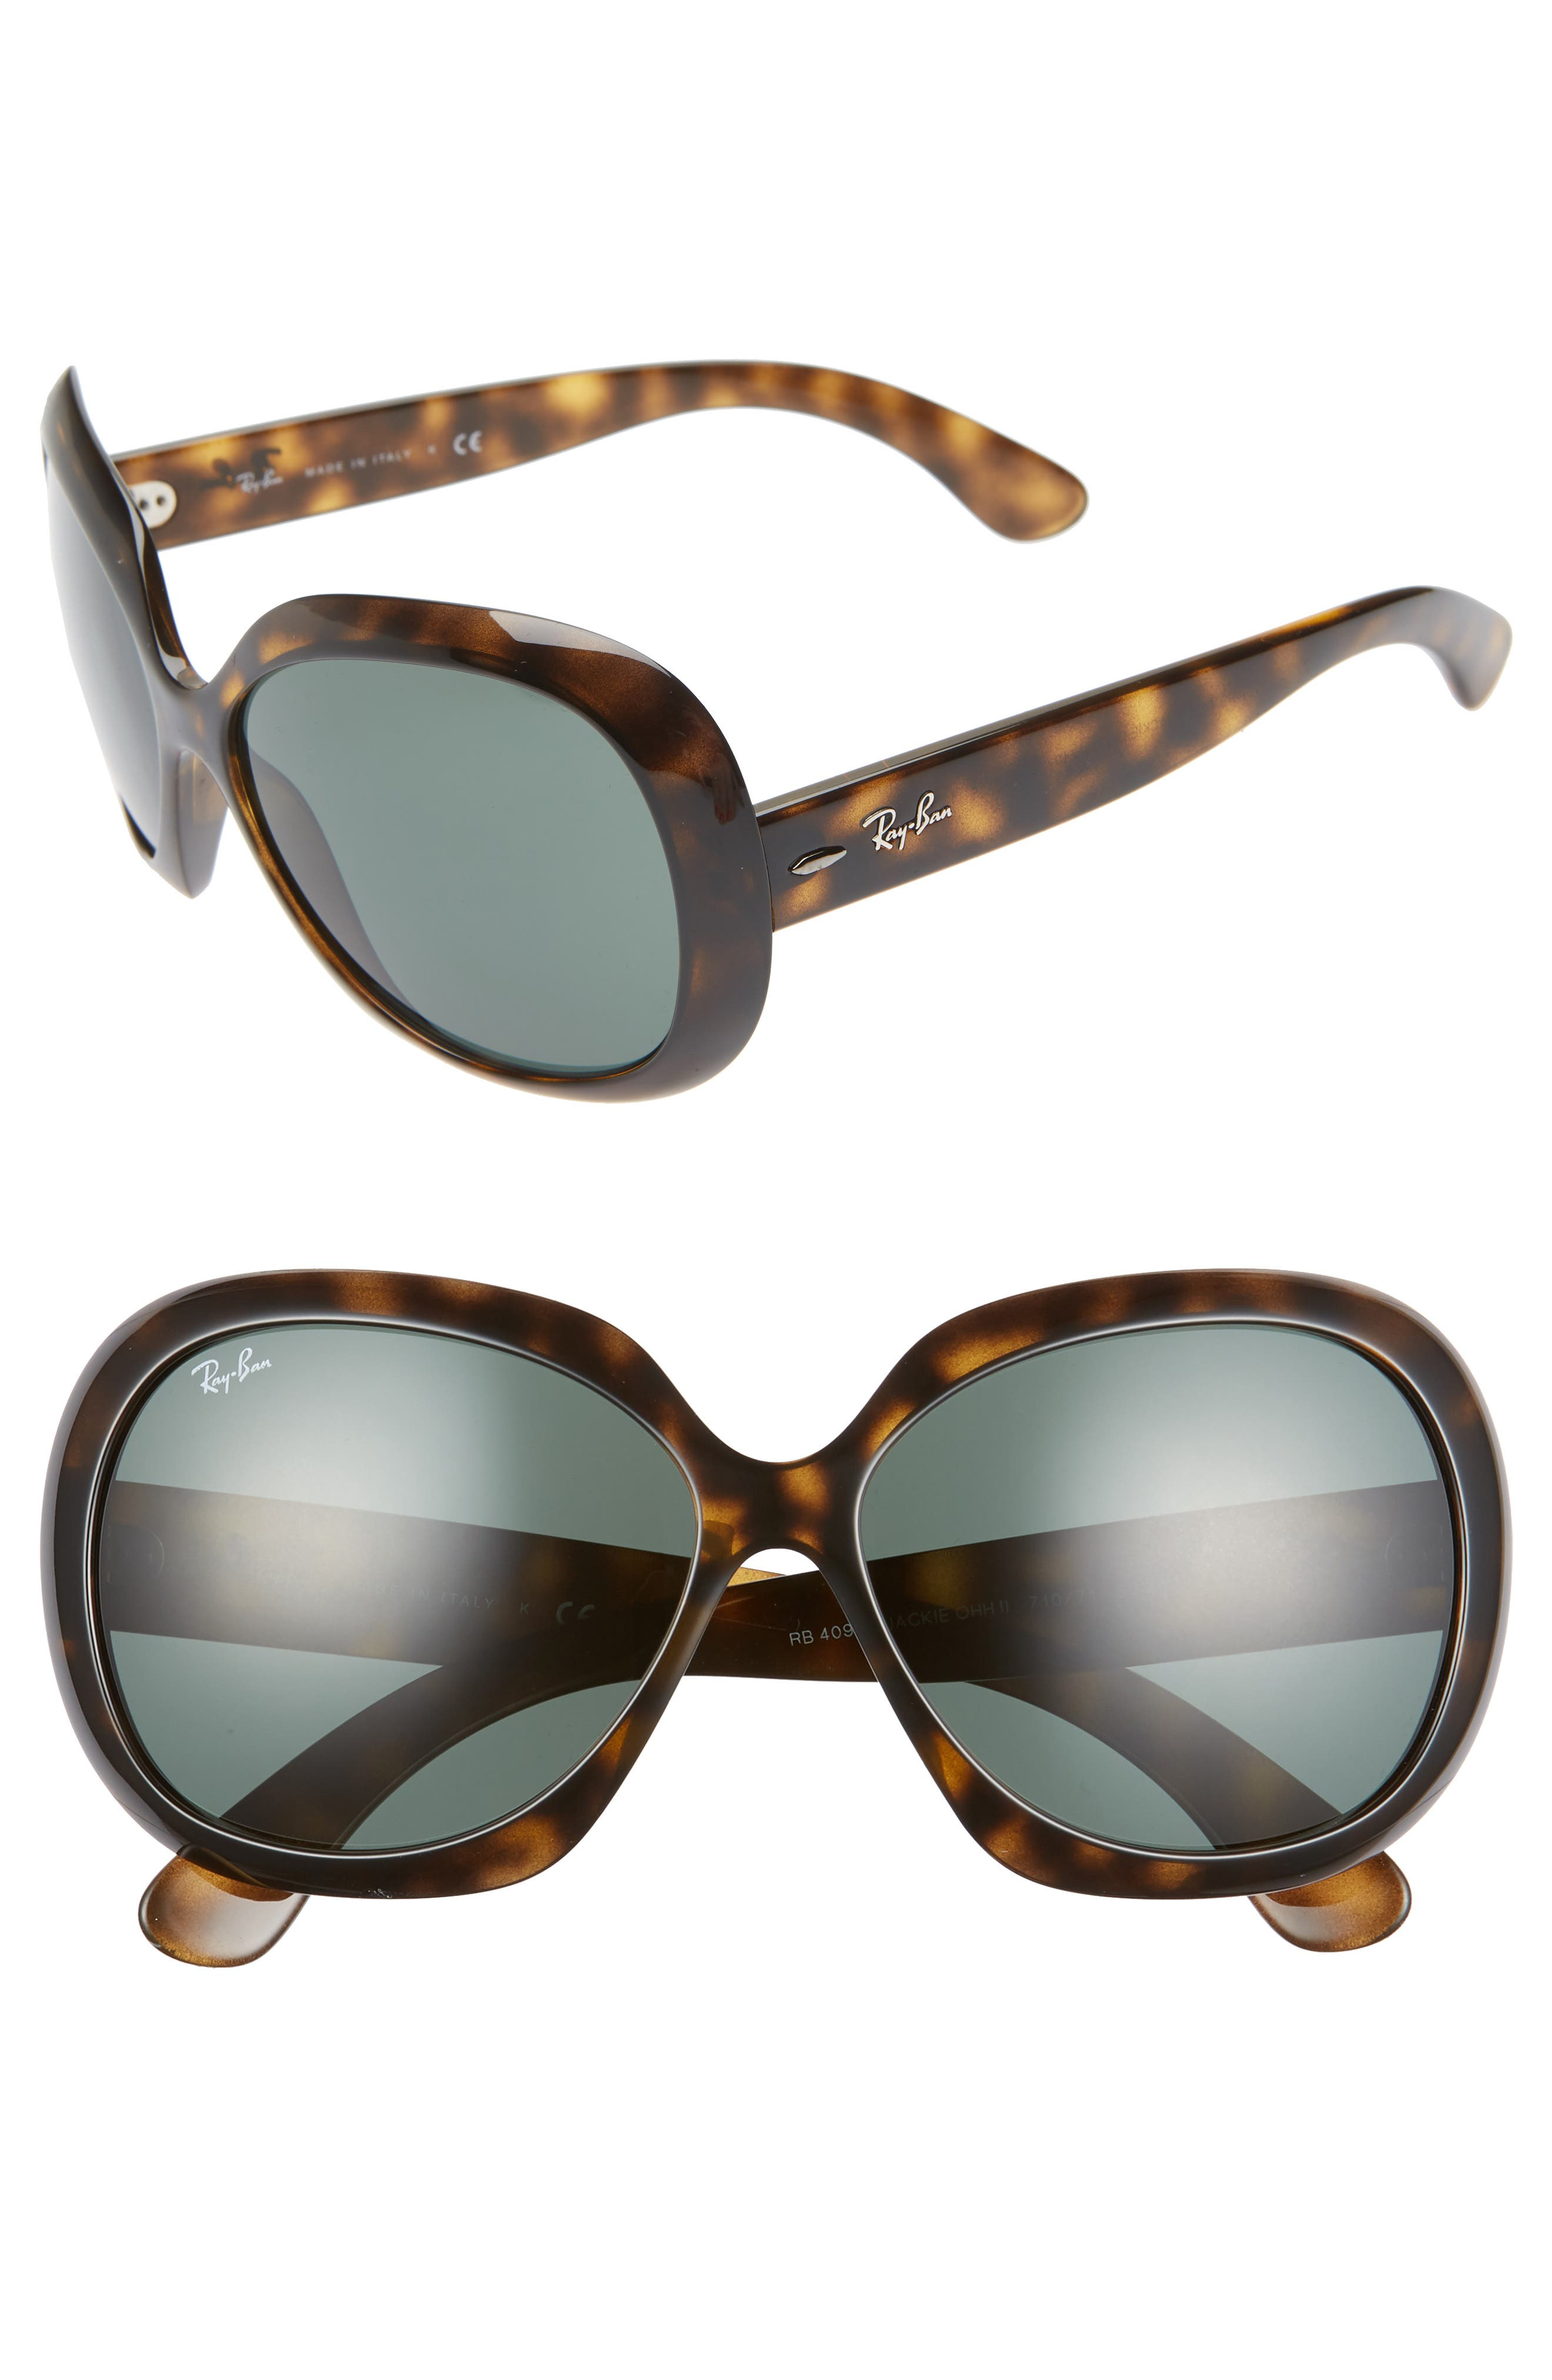 Ray-Ban 60Mm Large Vintage Round Frame Sunglasses - Havana Brown/ Green Solid